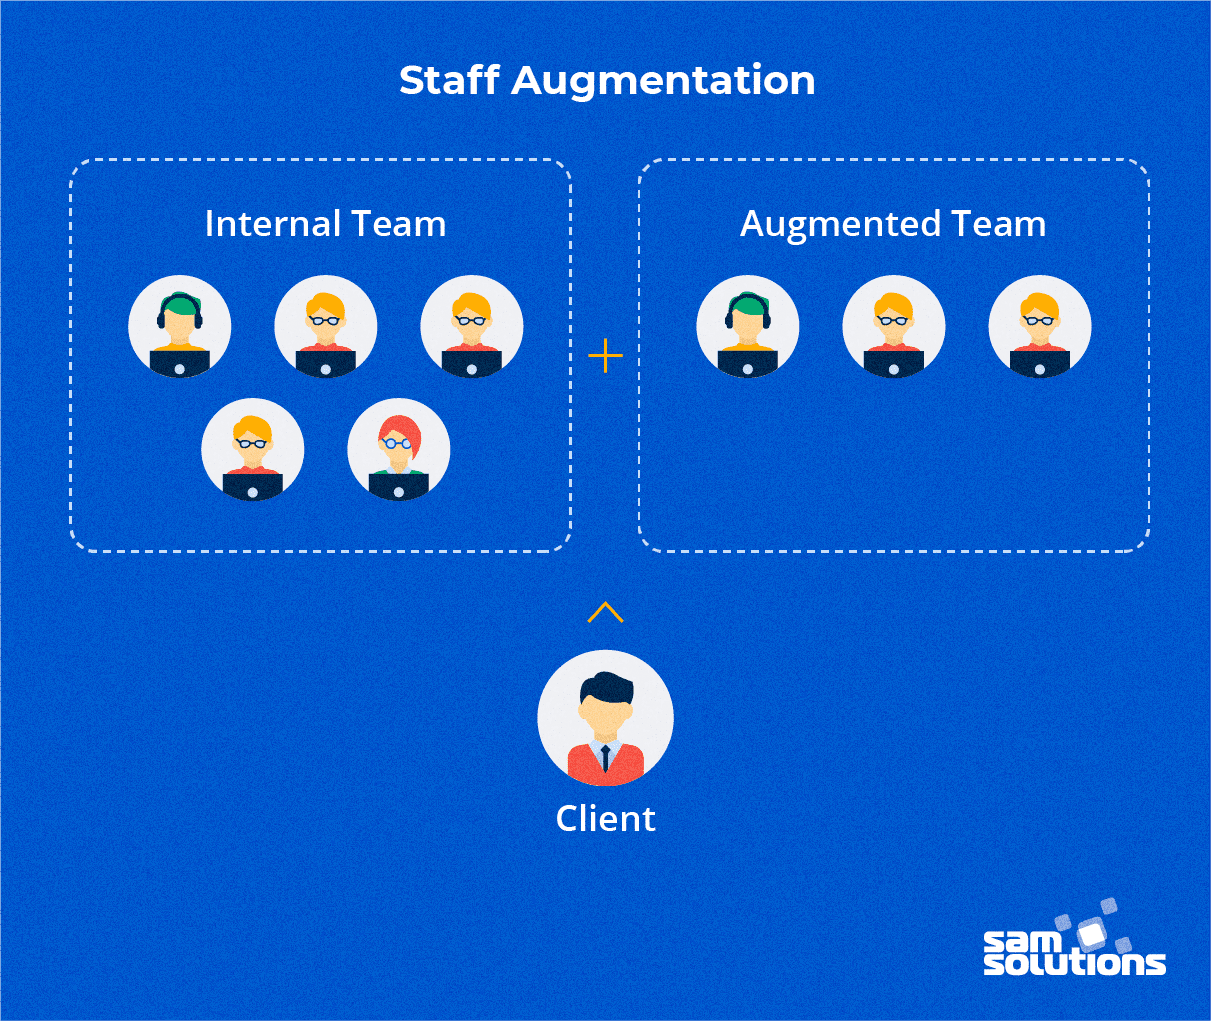 Staff-augmentation-outsourcing-model-photo